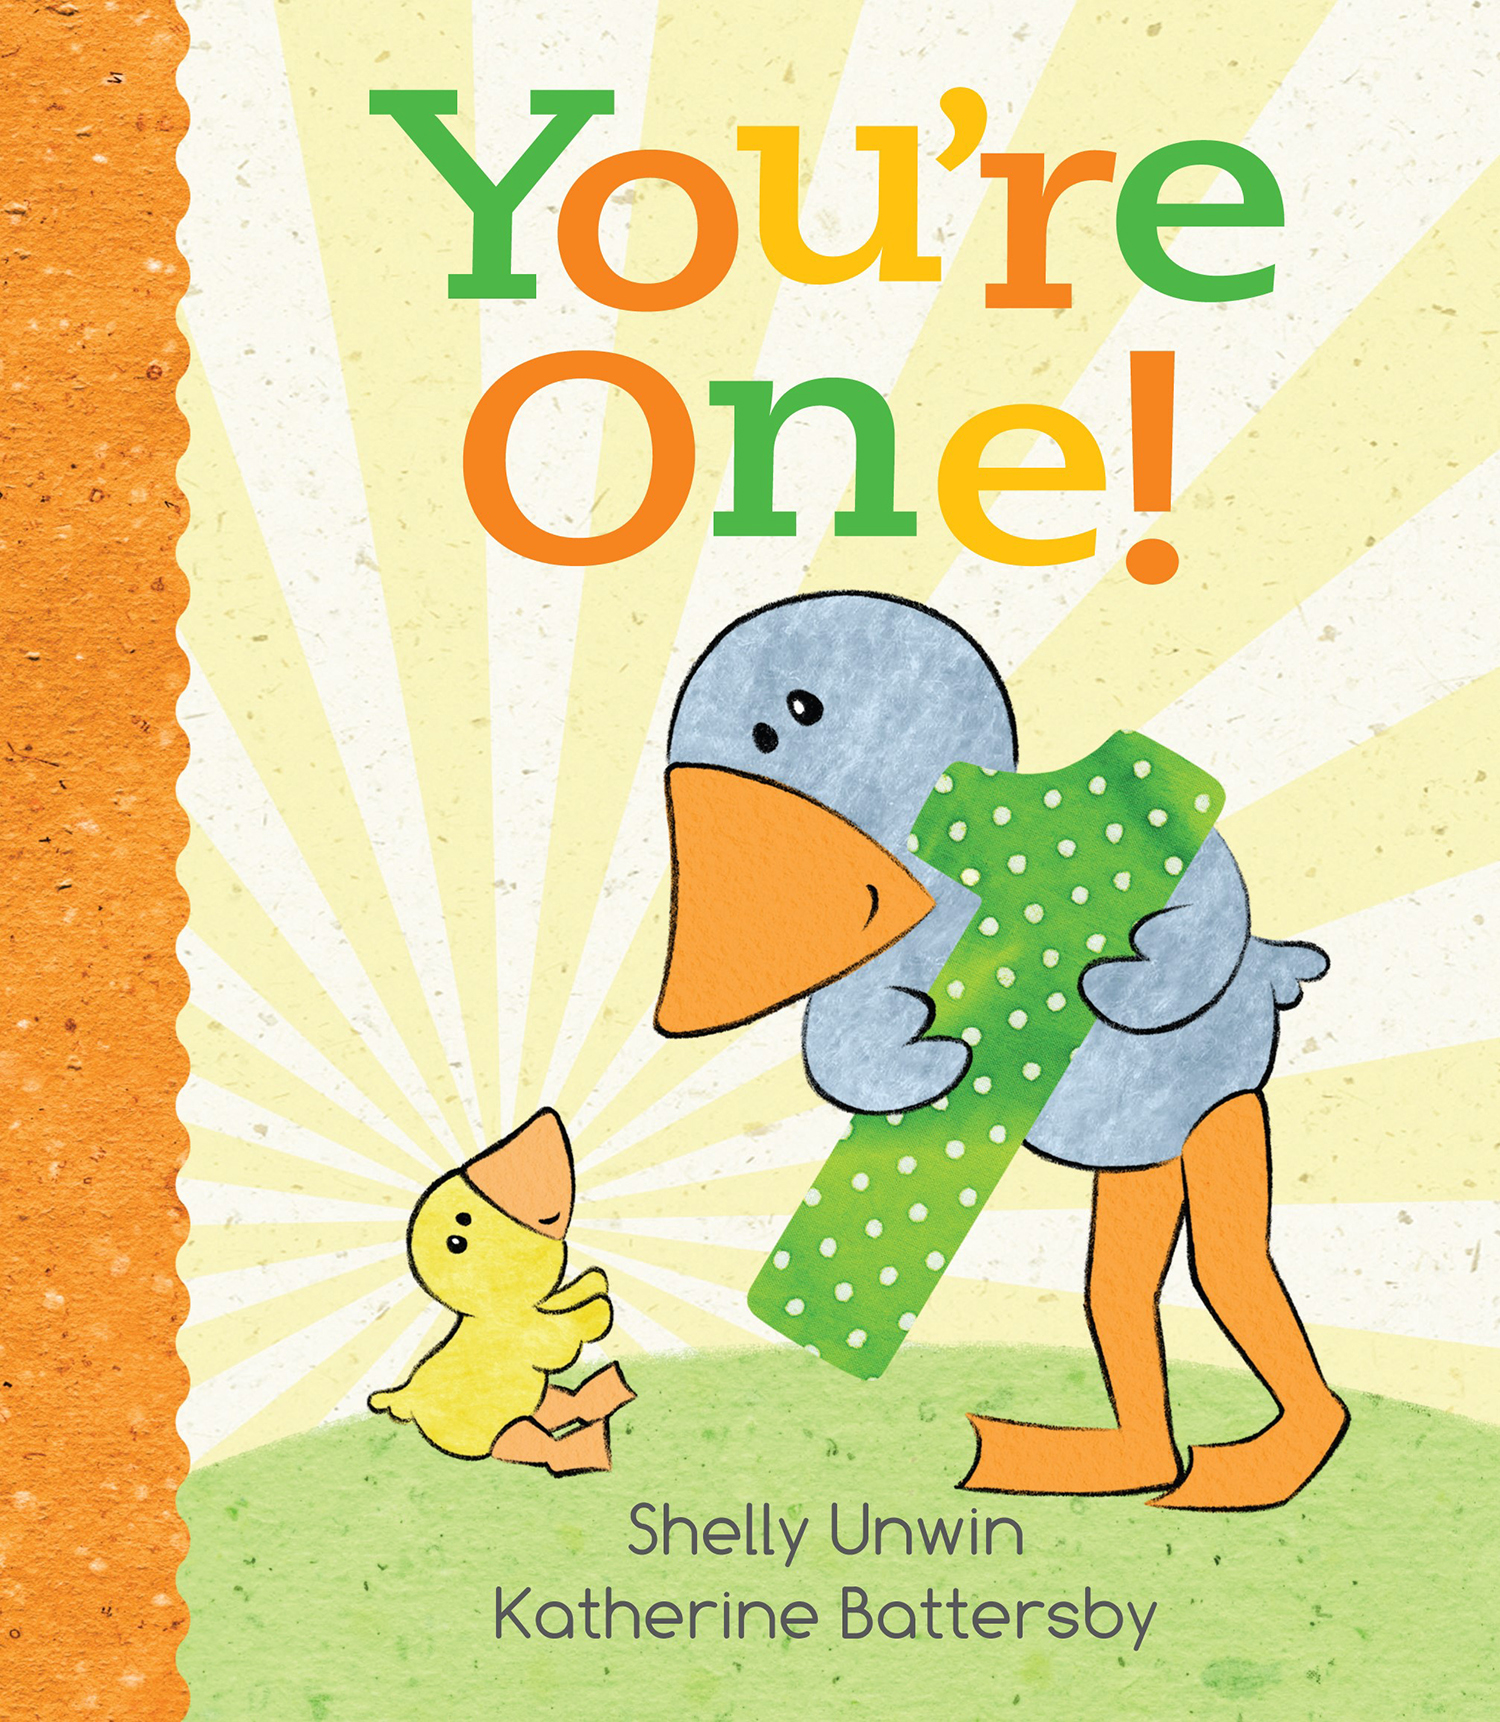 youre one cover.jpg